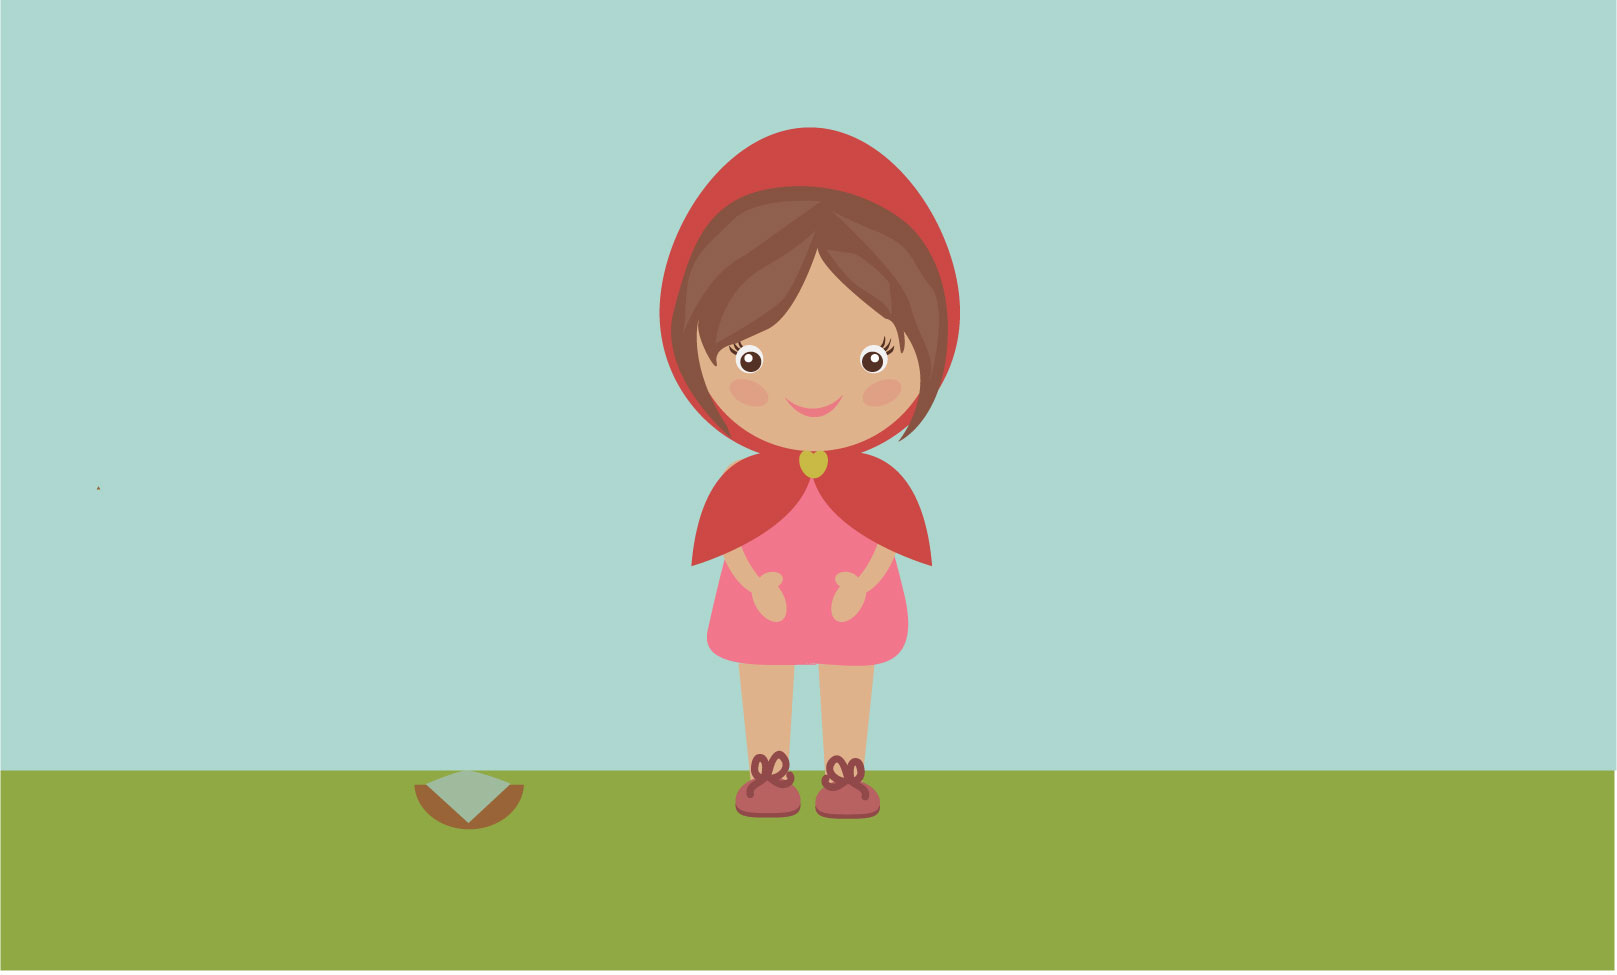 Character Design Using Adobe Illustrator : Character design red riding hood graphic